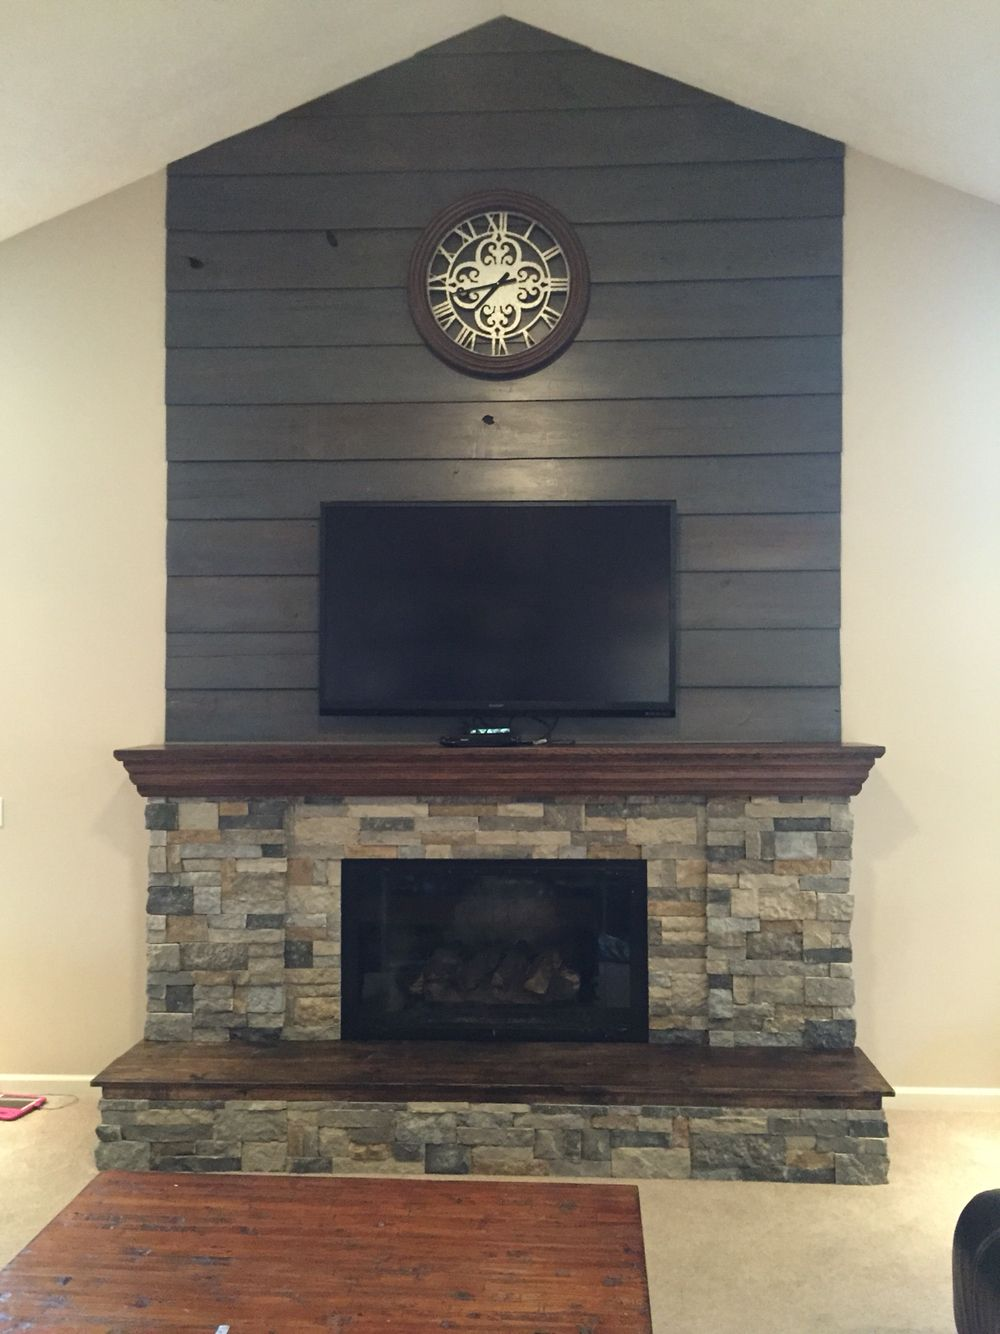 Fireplace diy makeoverold barnwood shiplap cleaned up and stained